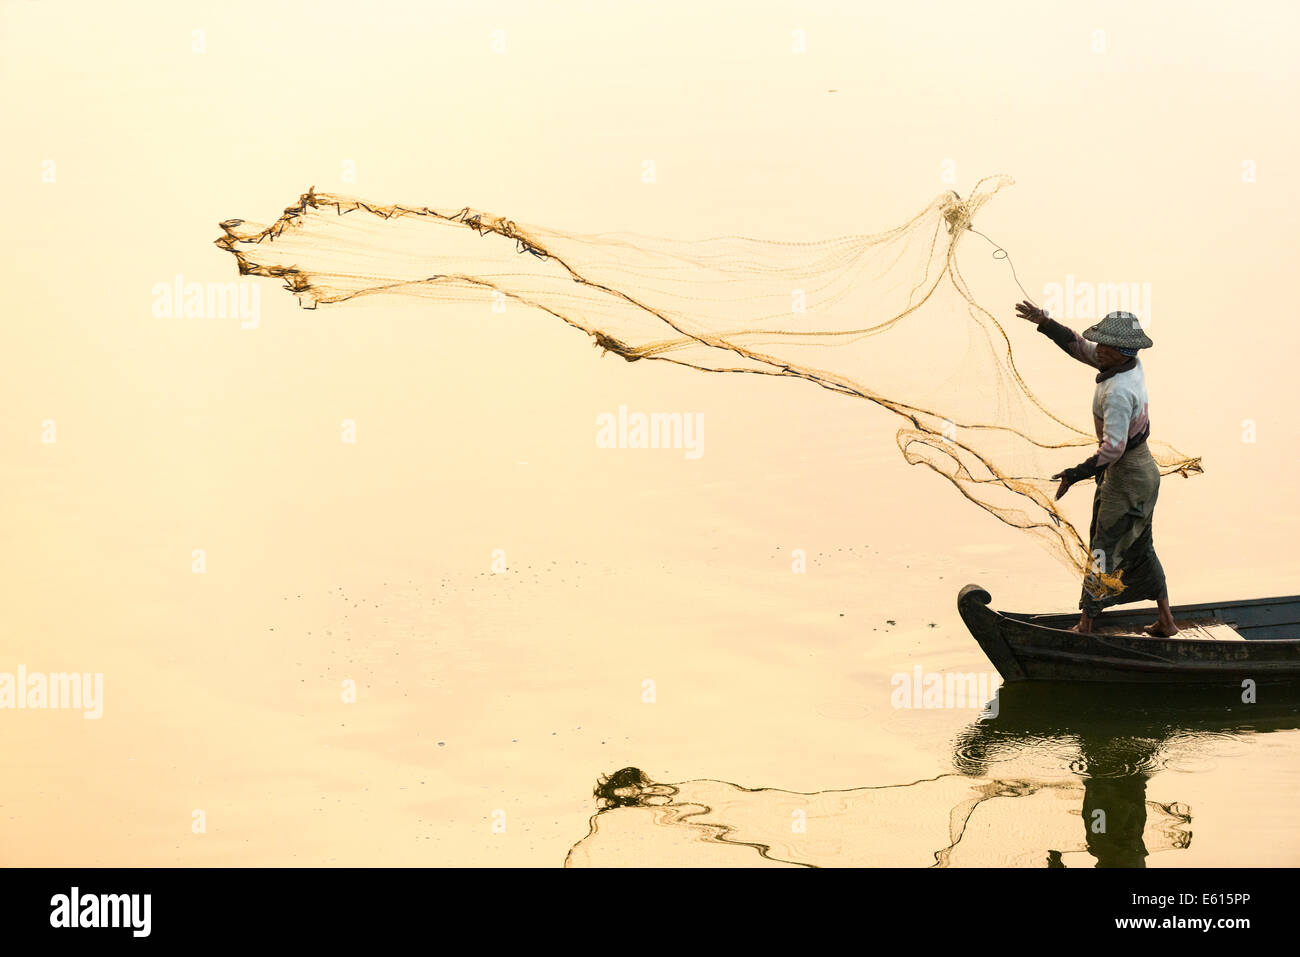 Fisherman in a boat tossing out a net, morning light, Thaungthaman Lake, Amarapura, Mandalay Division, Myanmar - Stock Image